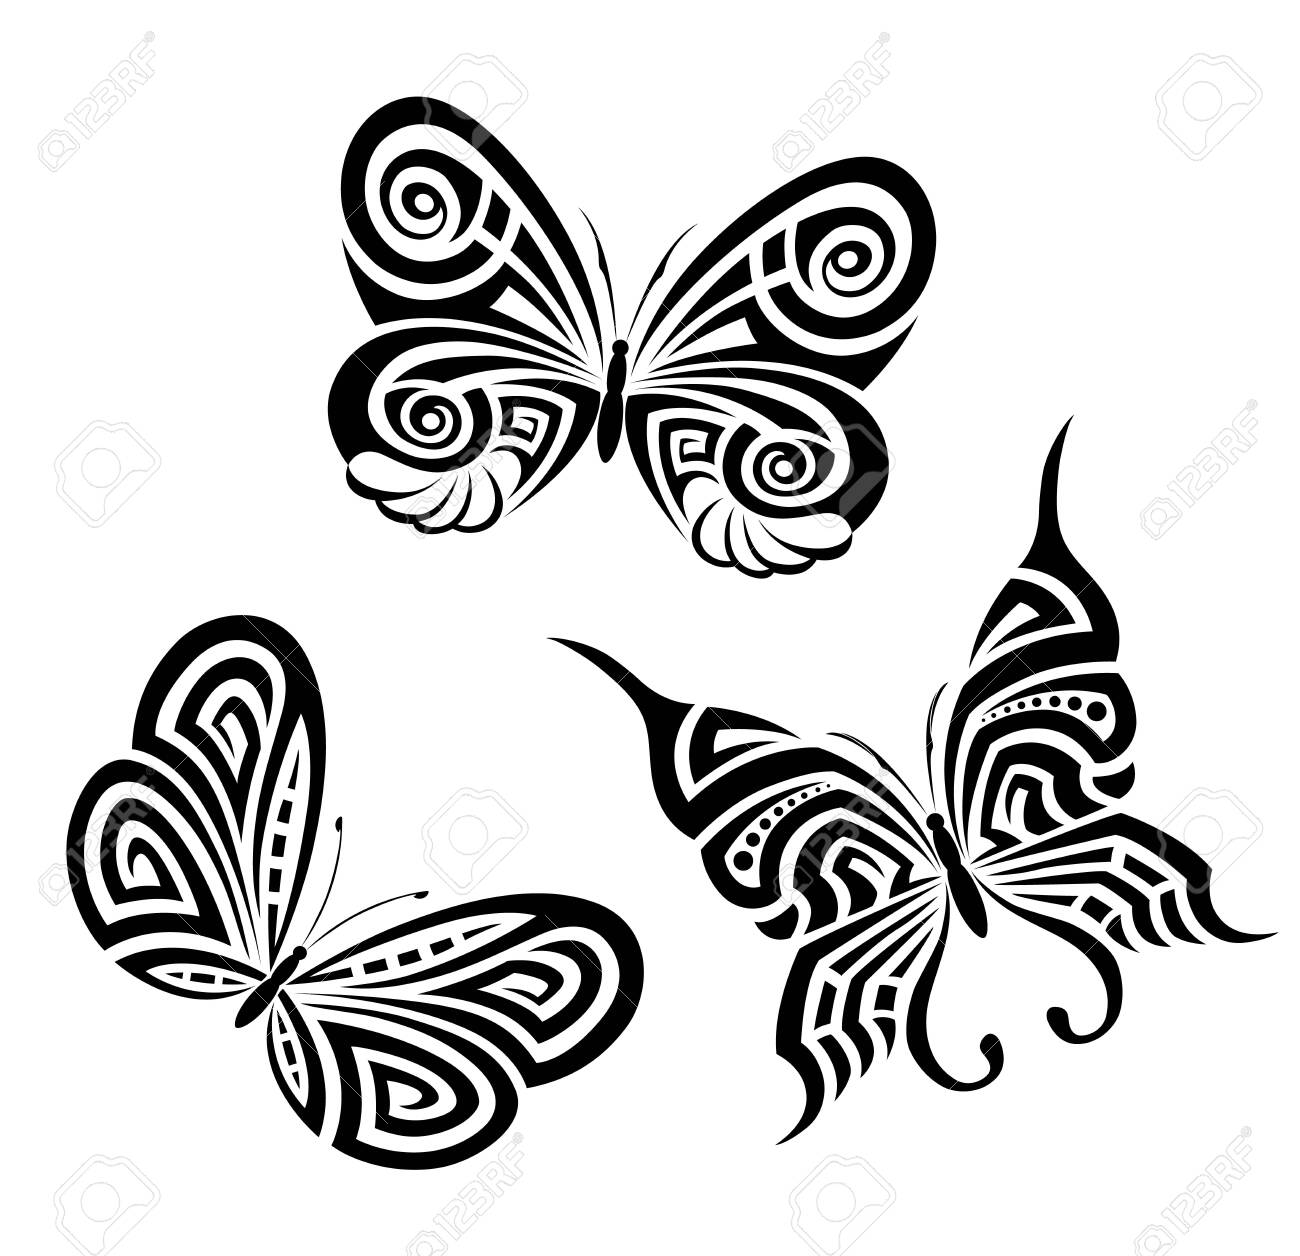 Vector background with the image set of black and white butterflies in the form of a tribal tattoo - 140632057